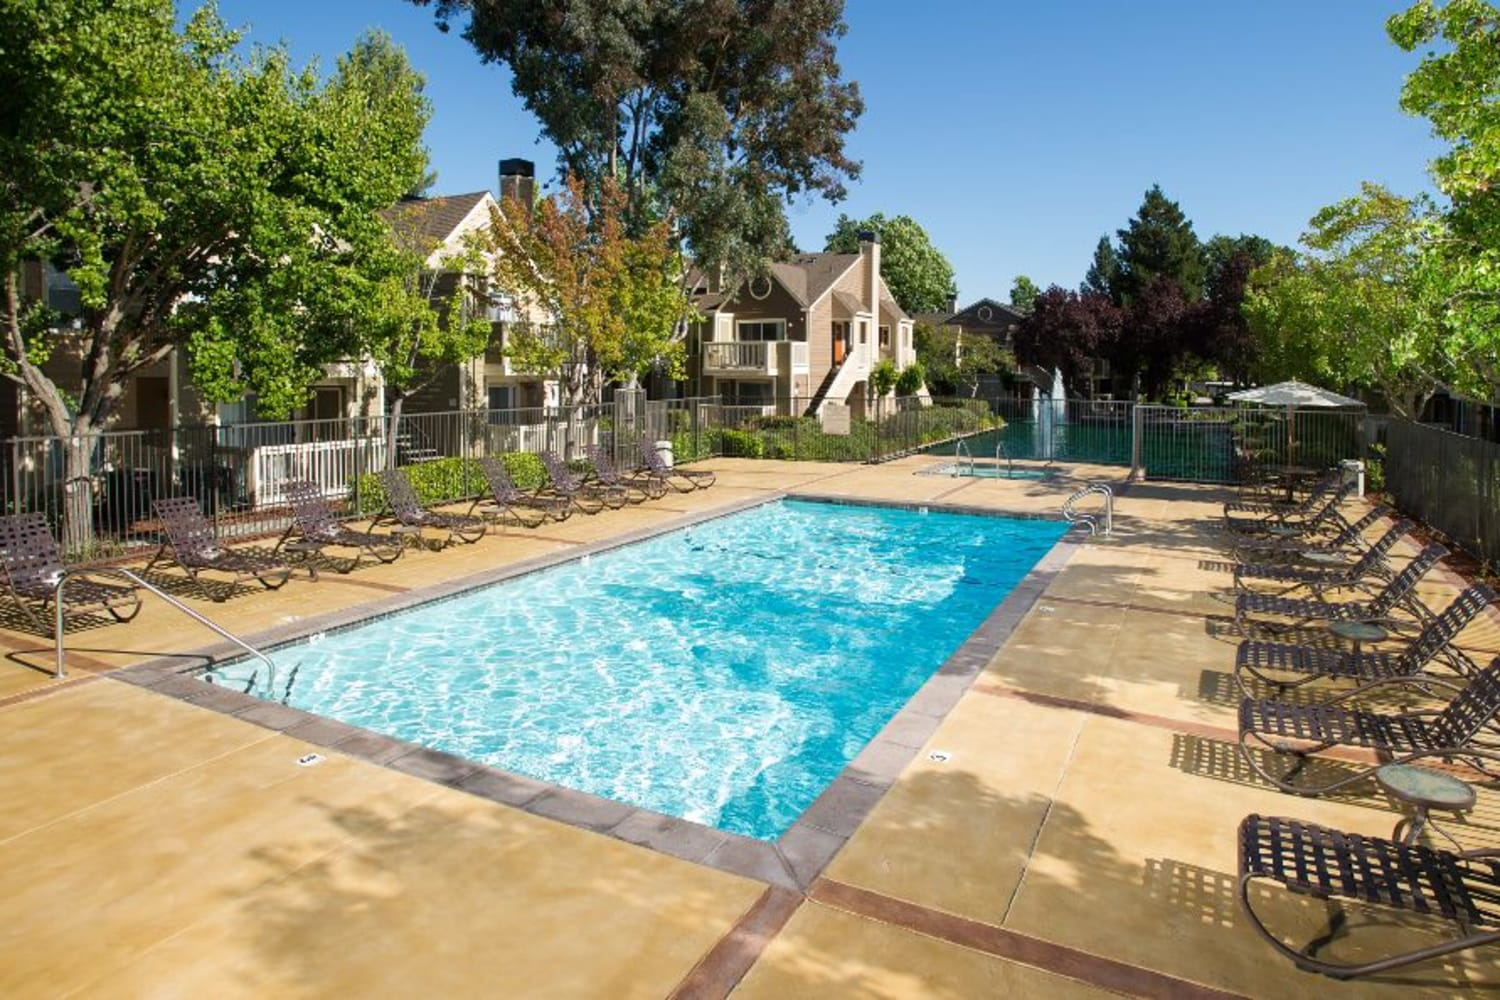 Soak up the sun by the sparkling swimming pool at Bridges at San Ramon in San Ramon, California